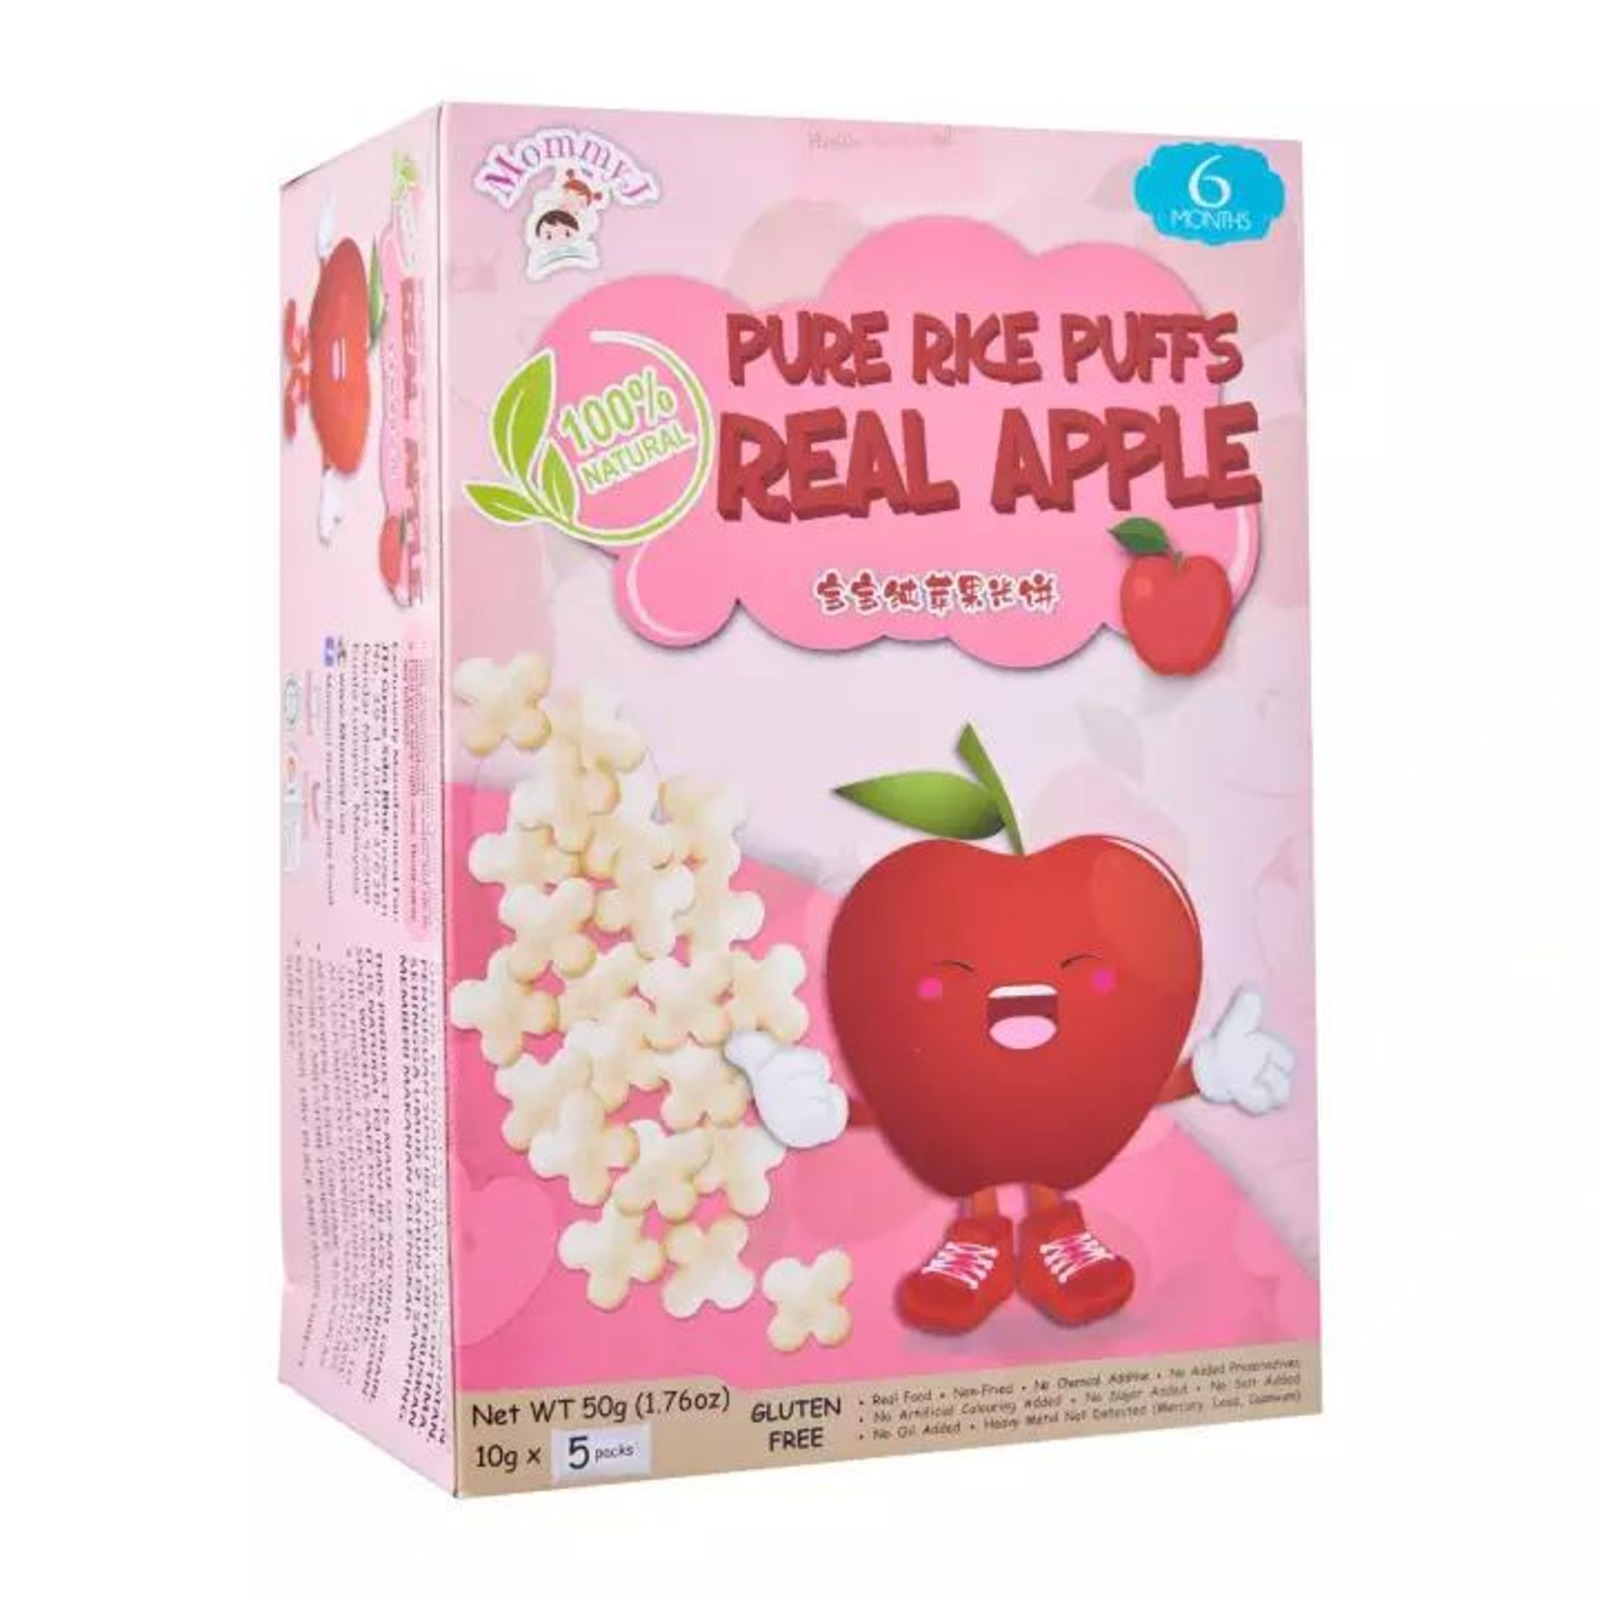 MommyJ Real Apple Pure Rice Puff